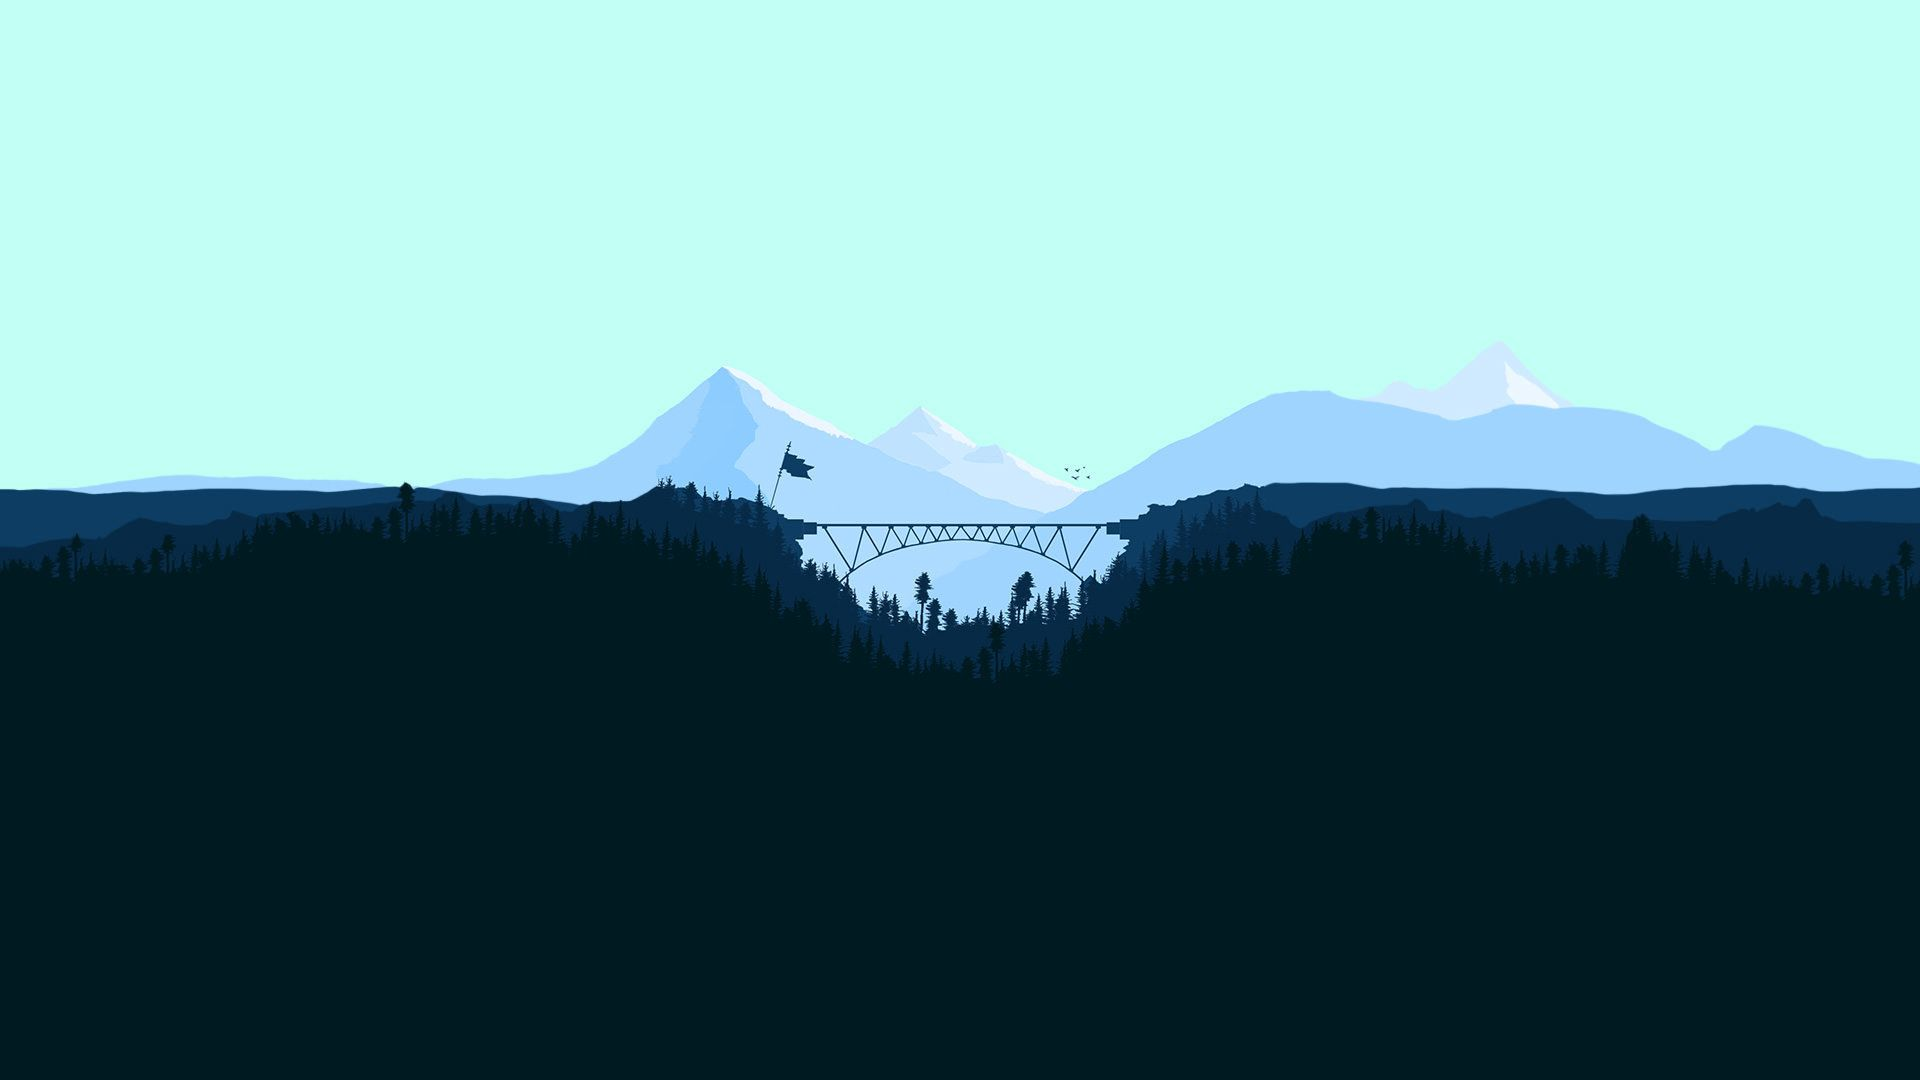 Free Mountain Vector desktop background